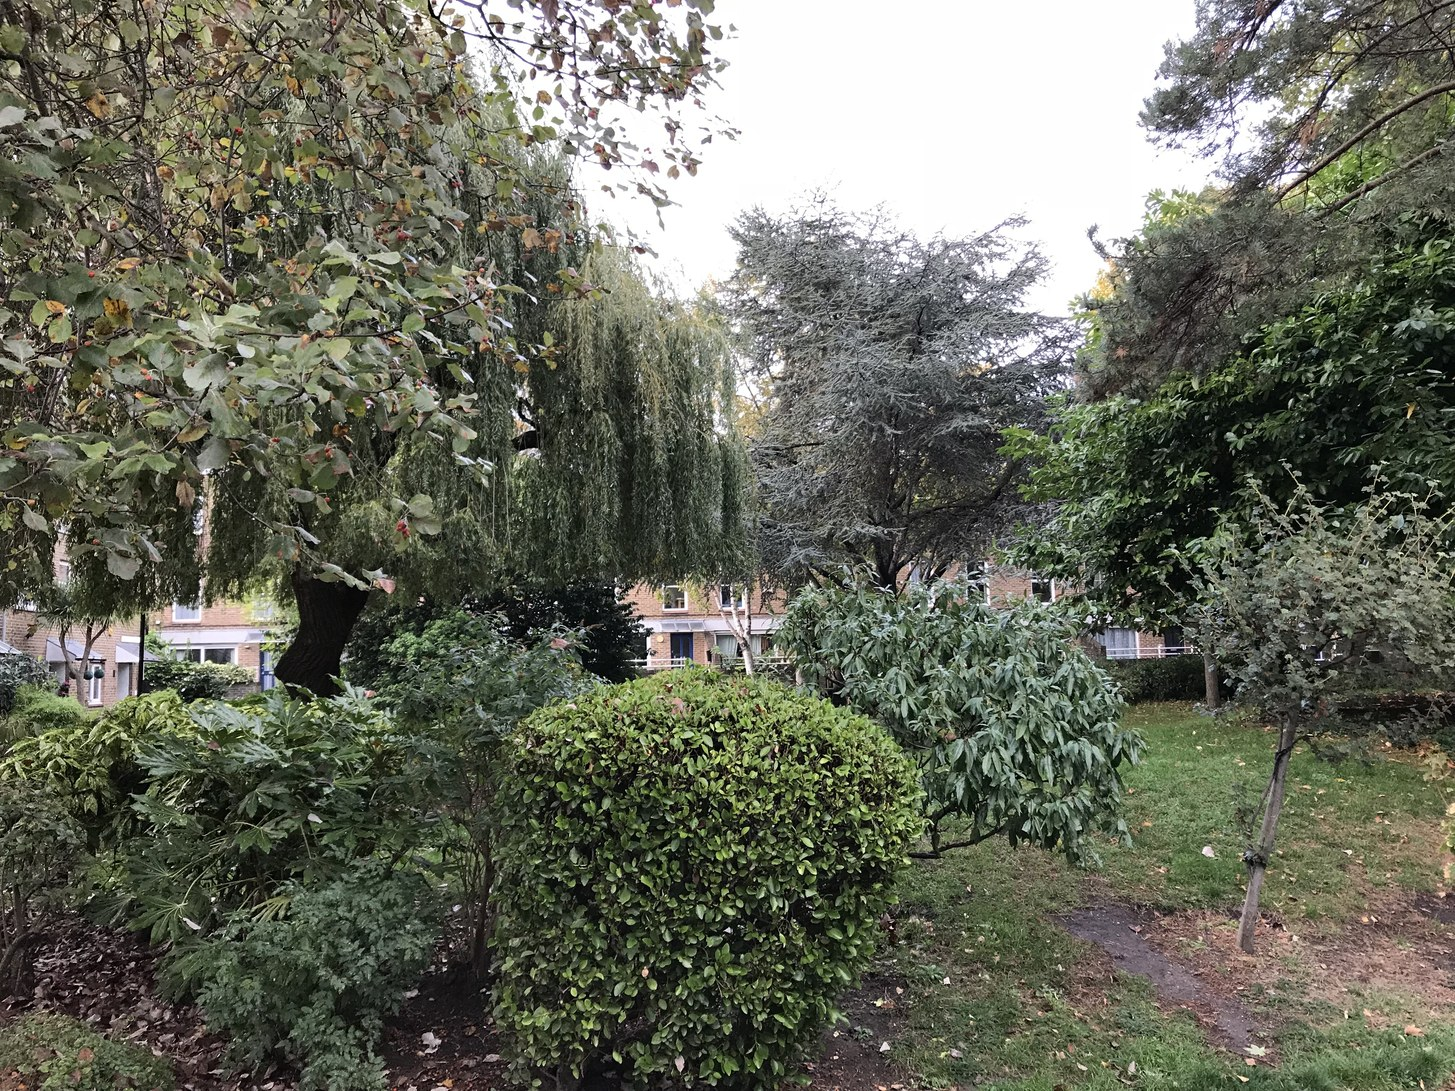 The courtyard is overgrown: ideal for a game of hide and seek